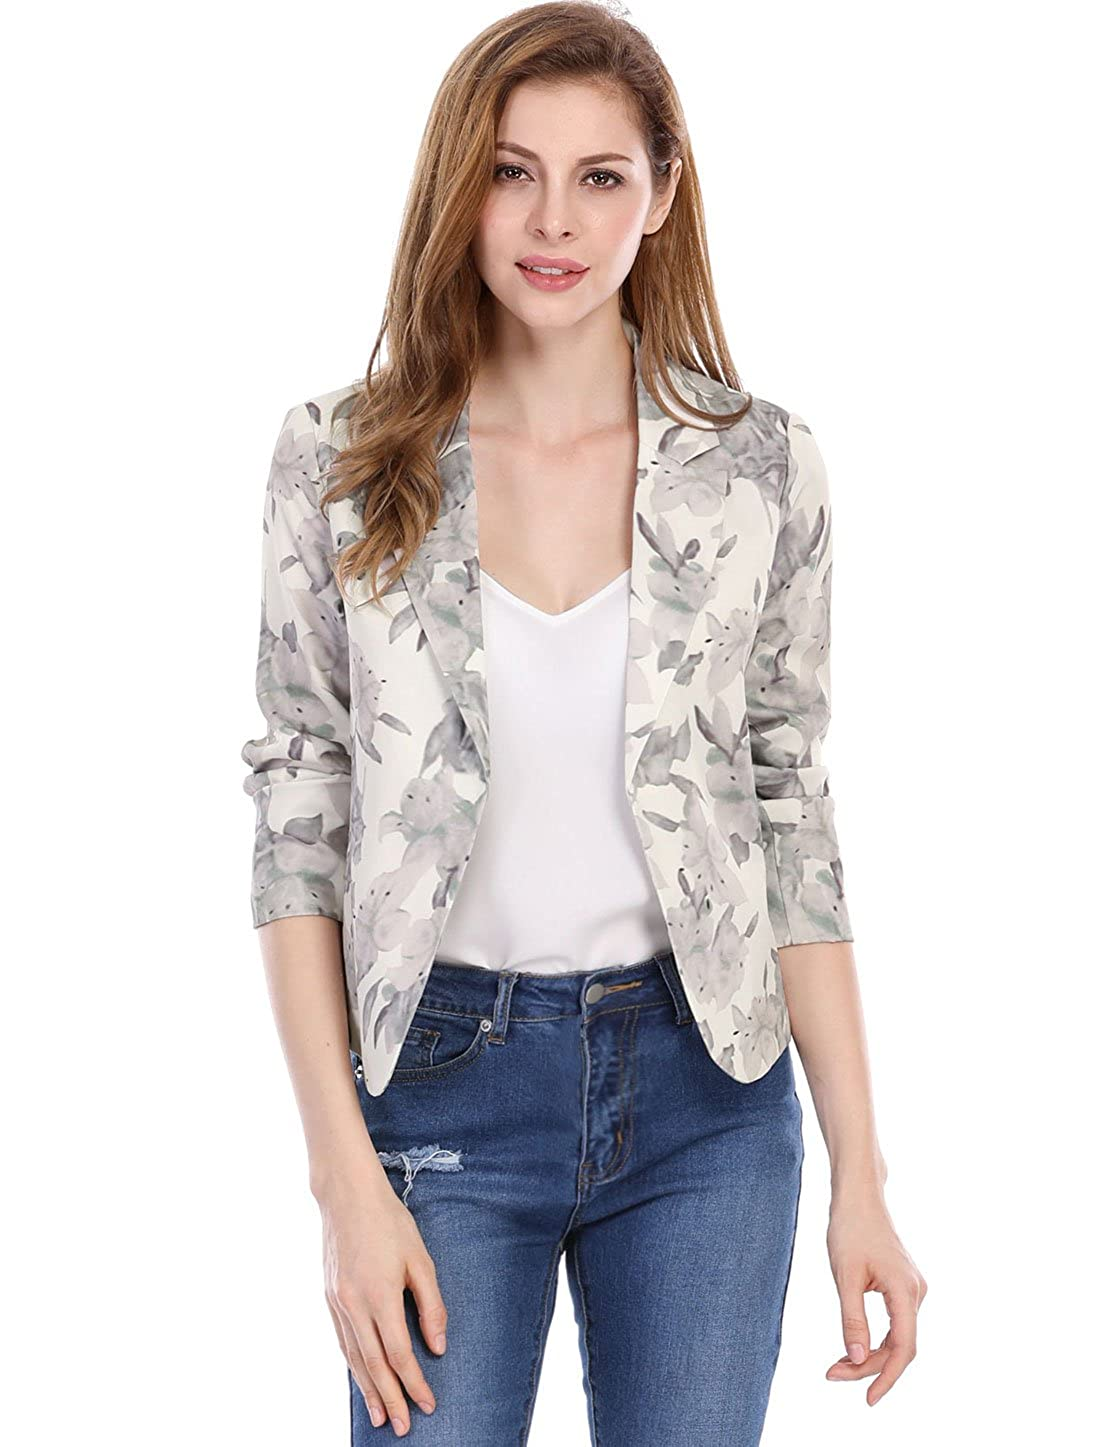 Allegra K Women's Casual Contrast Lining Open Front Floral Print Short Blazer g17042700ux0061